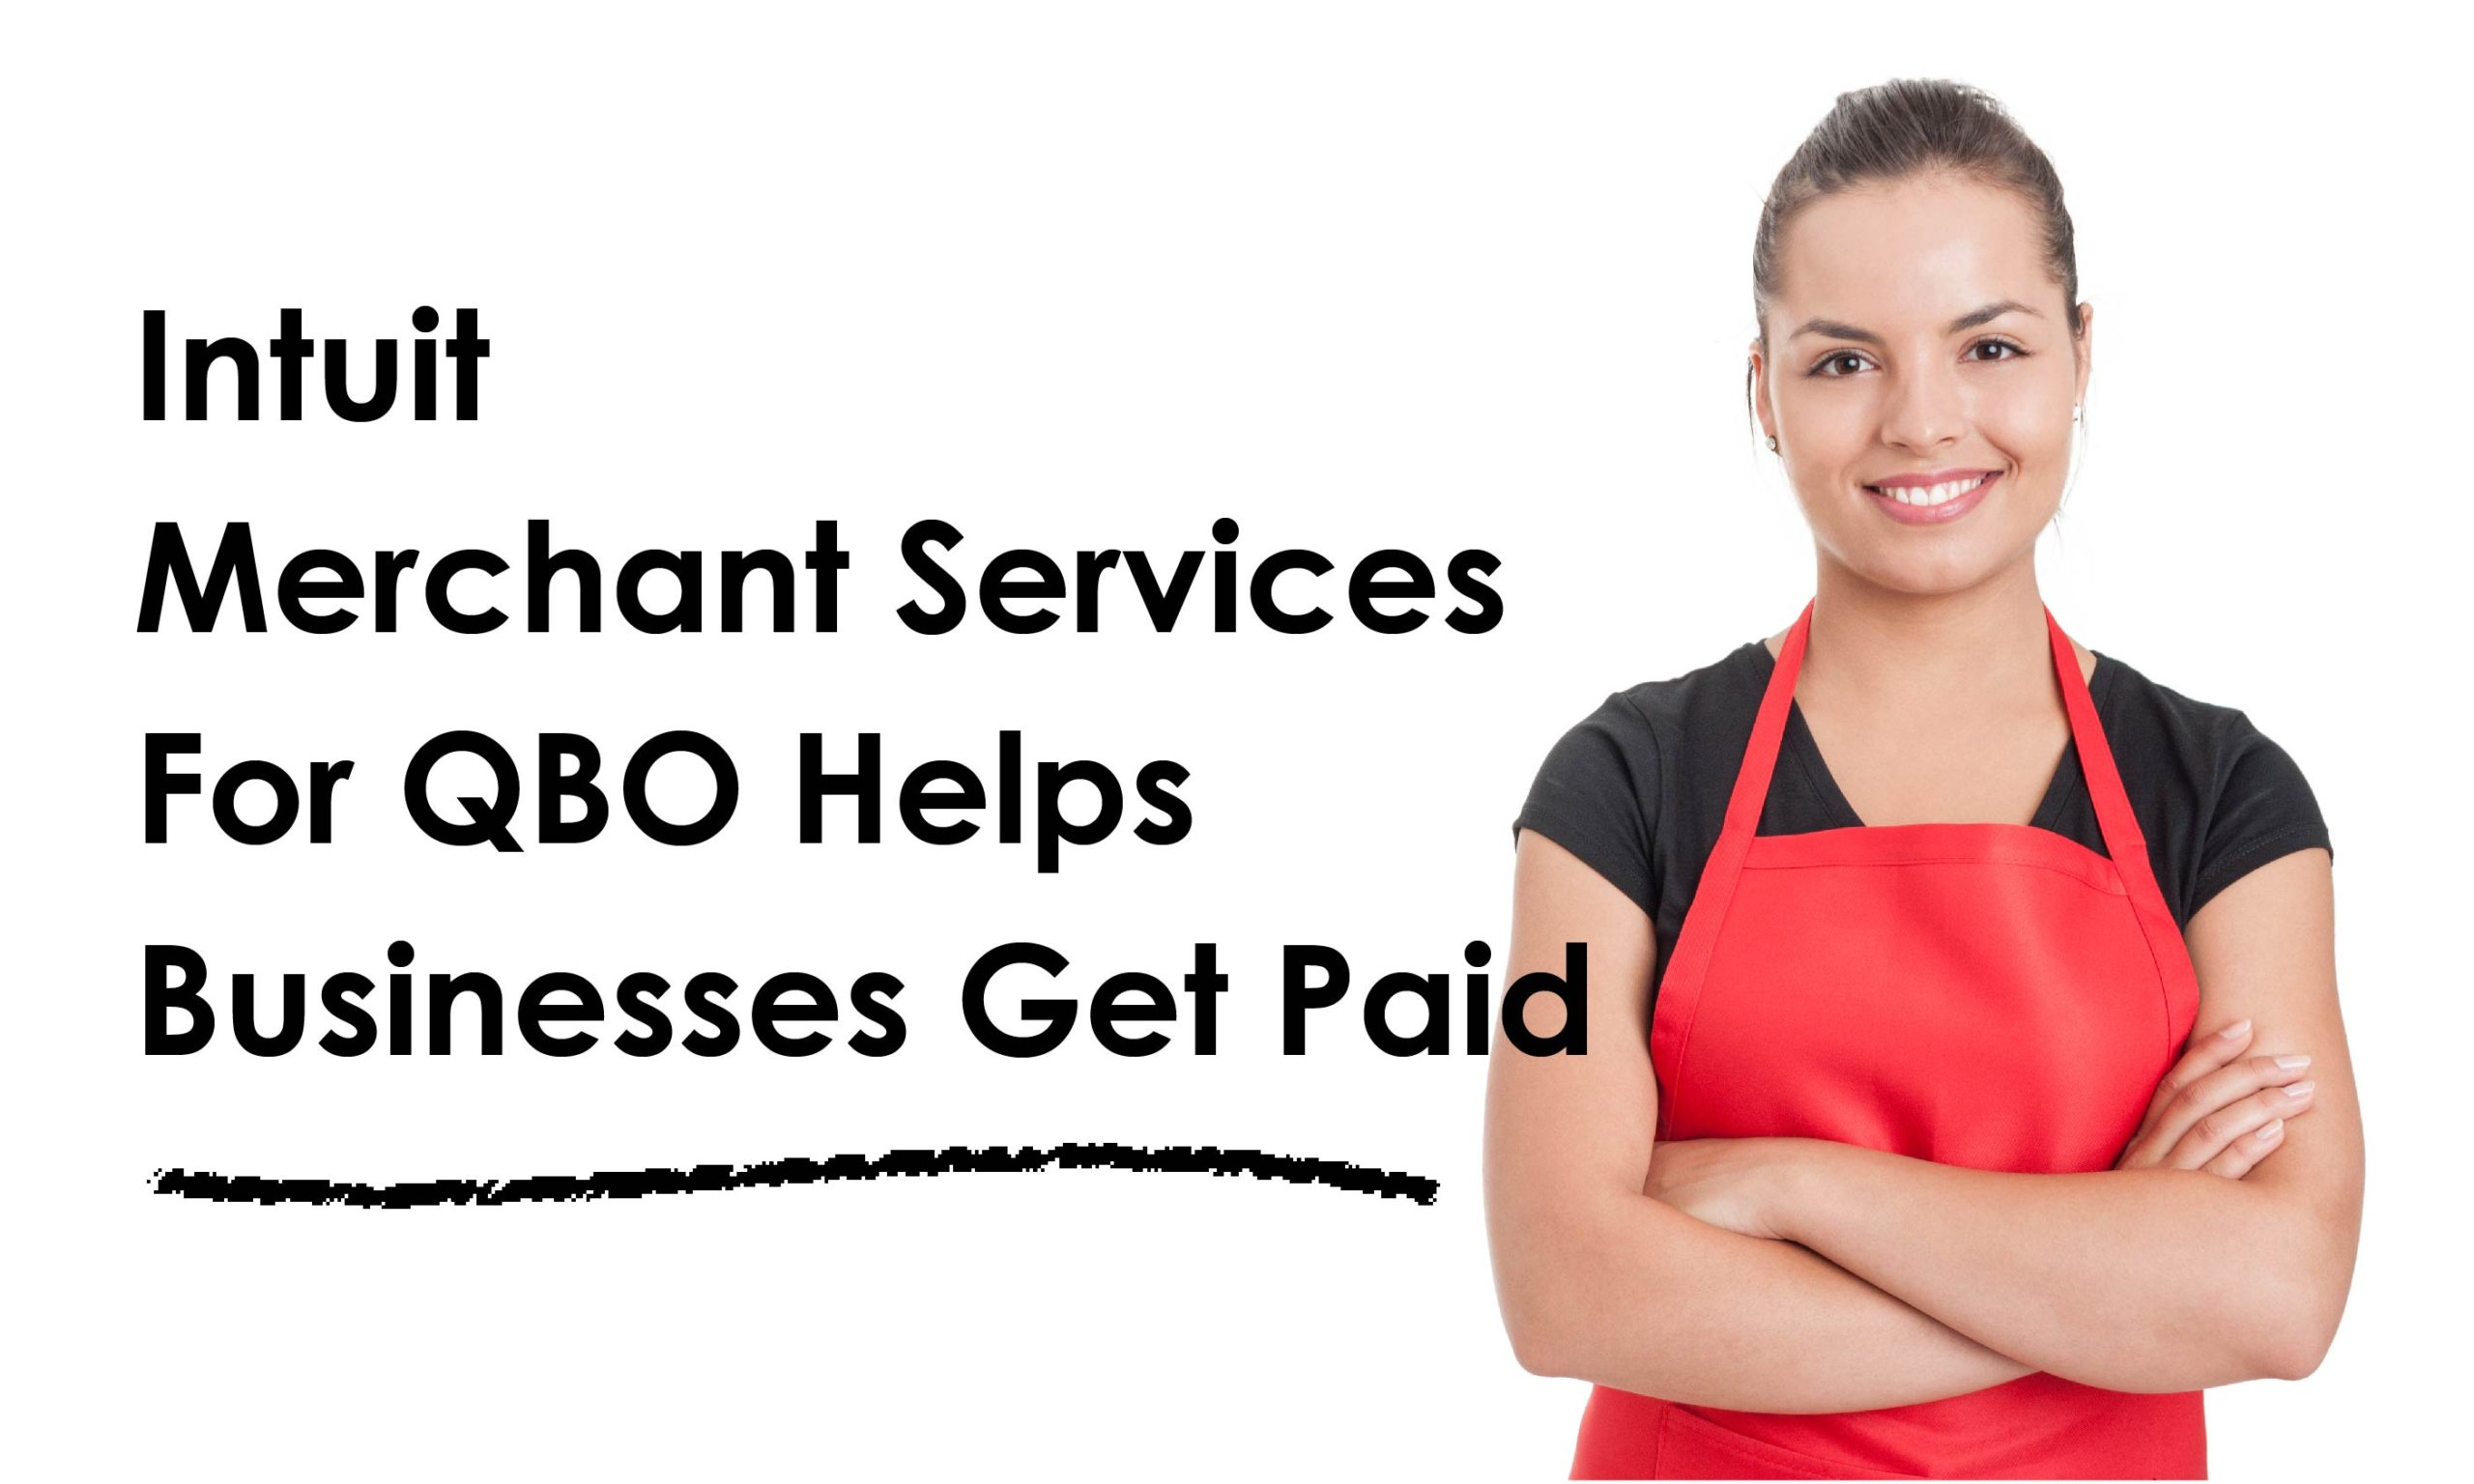 Intuit Merchant Services For QBO Helps Businesses Get Paid